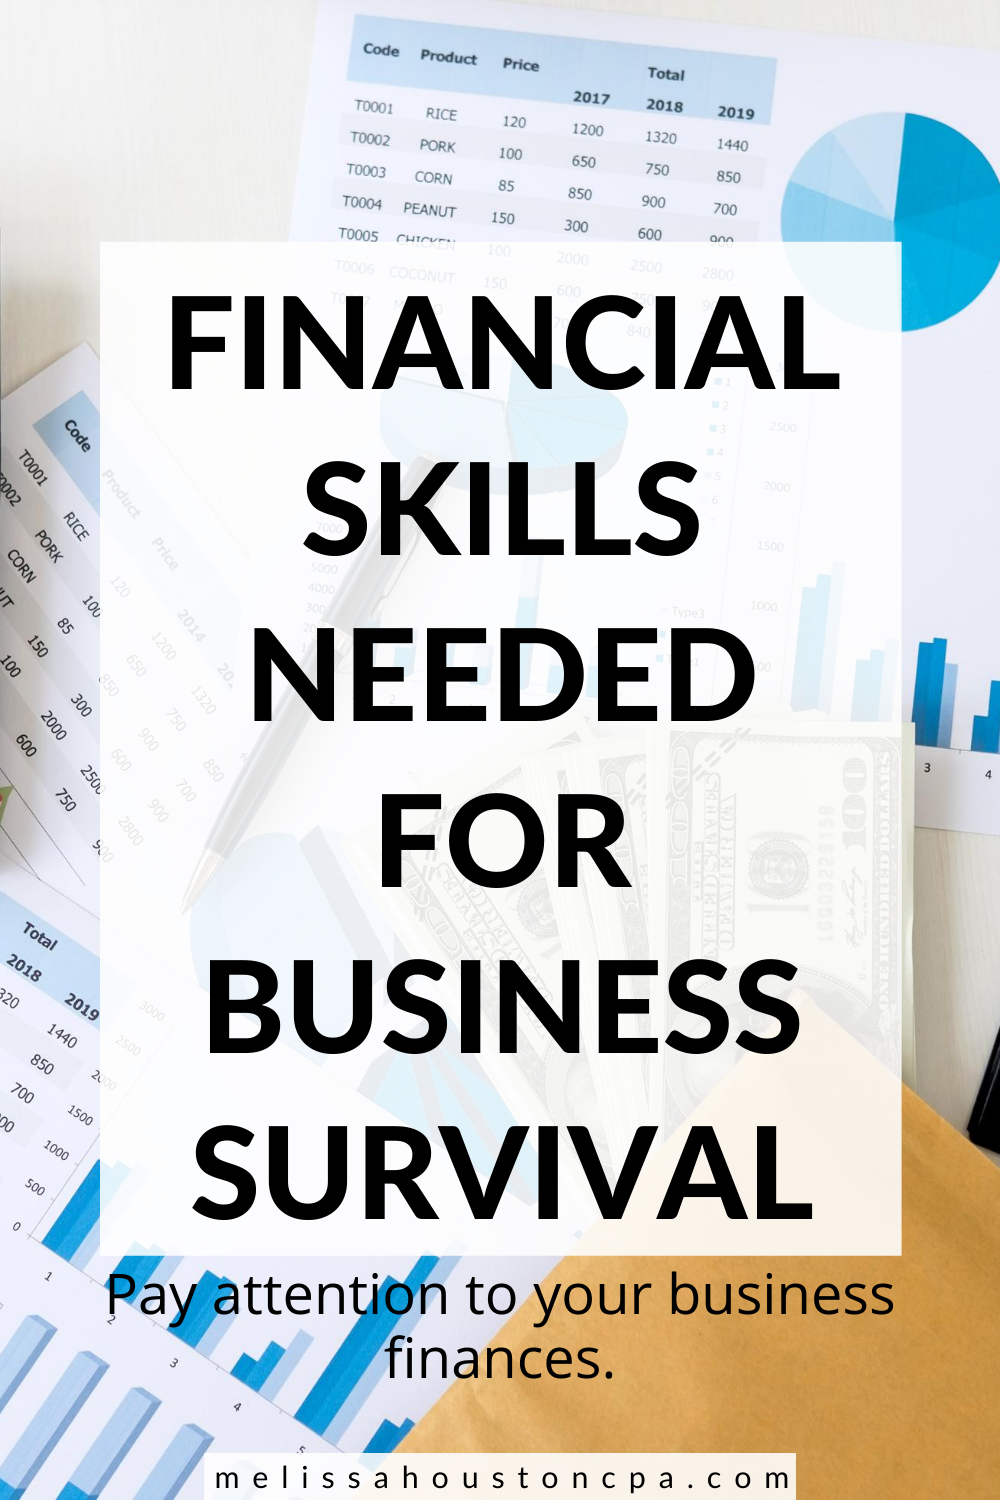 Financial Skills Needed For Business Survival Business Finance Management Financial Small Business Finance